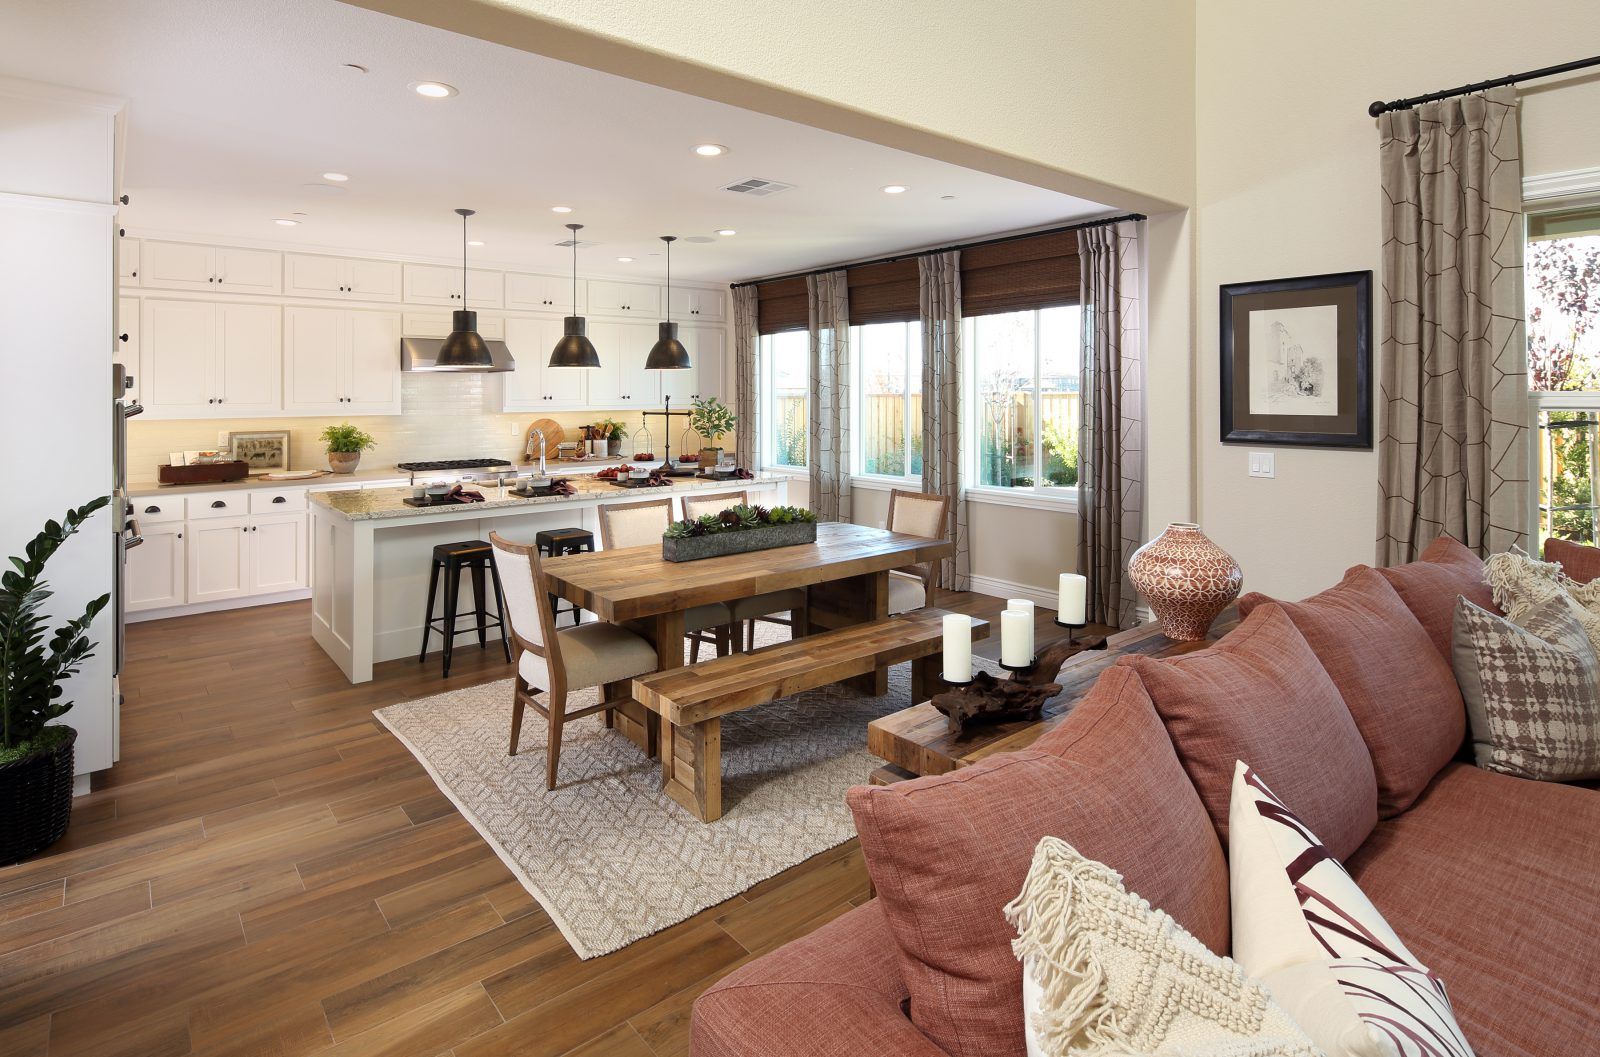 Residence 3 Kitchen to Dining Room | Laurel at Emerson Ranch in Oakley, CA | Brookfield Residential